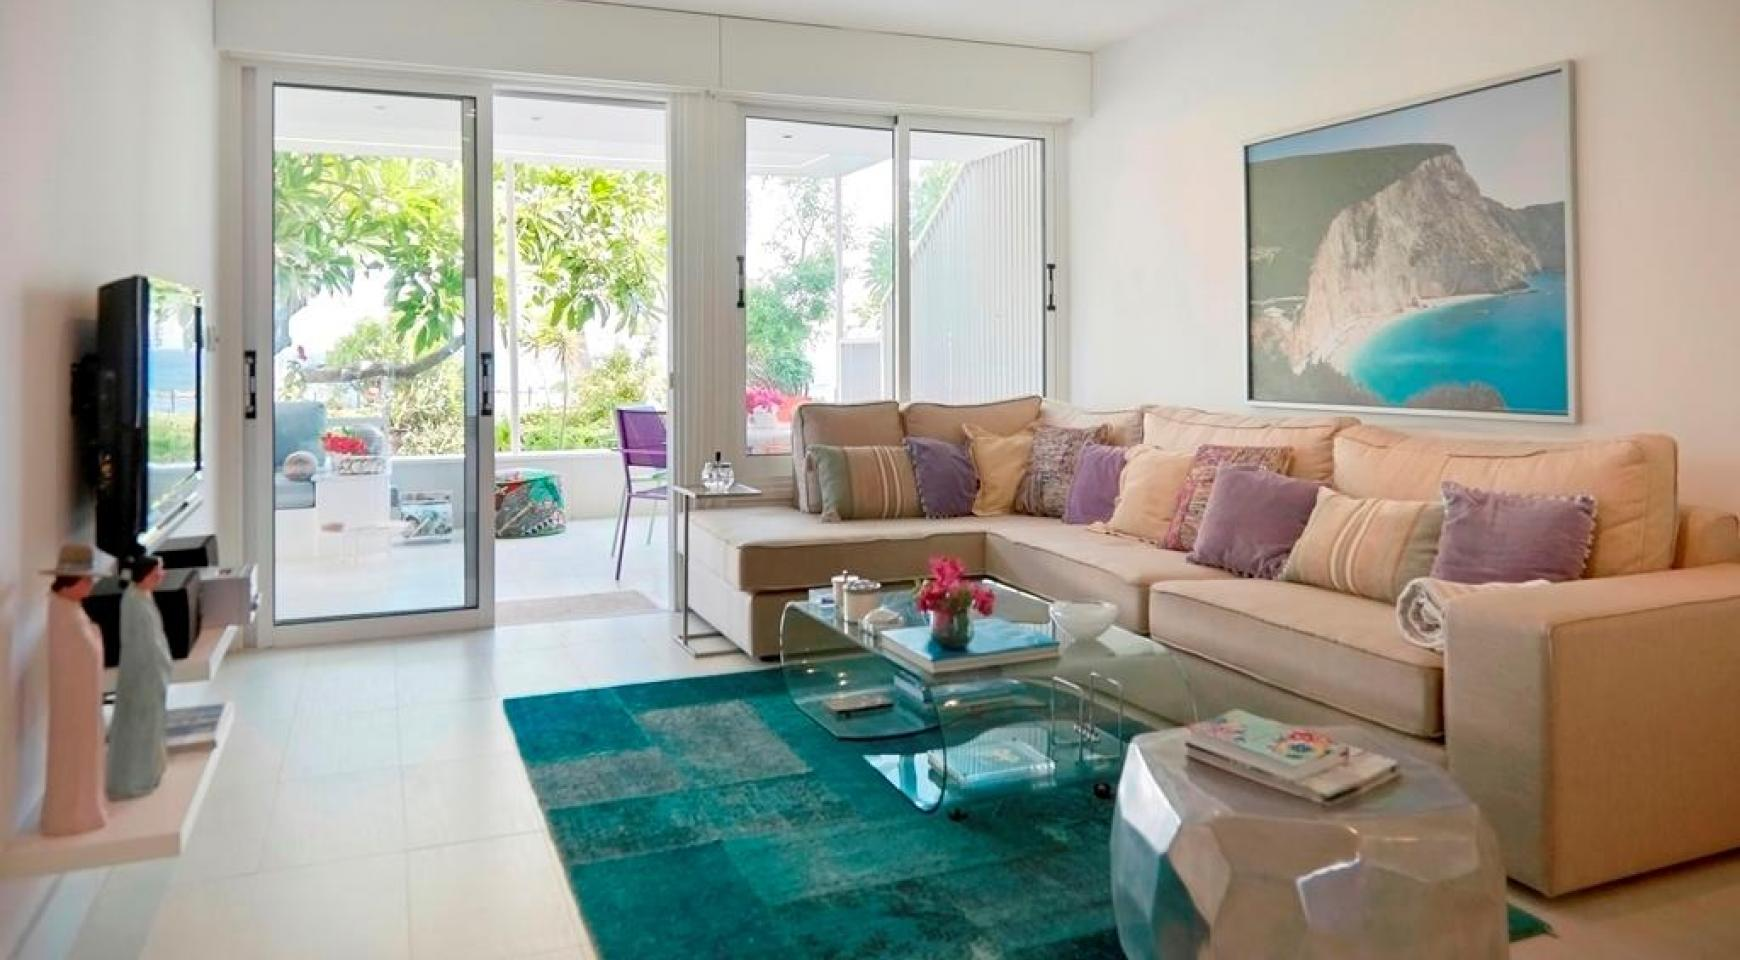 Luxury 2 Bedroom Apartment Berengaria on the Seafront - 9